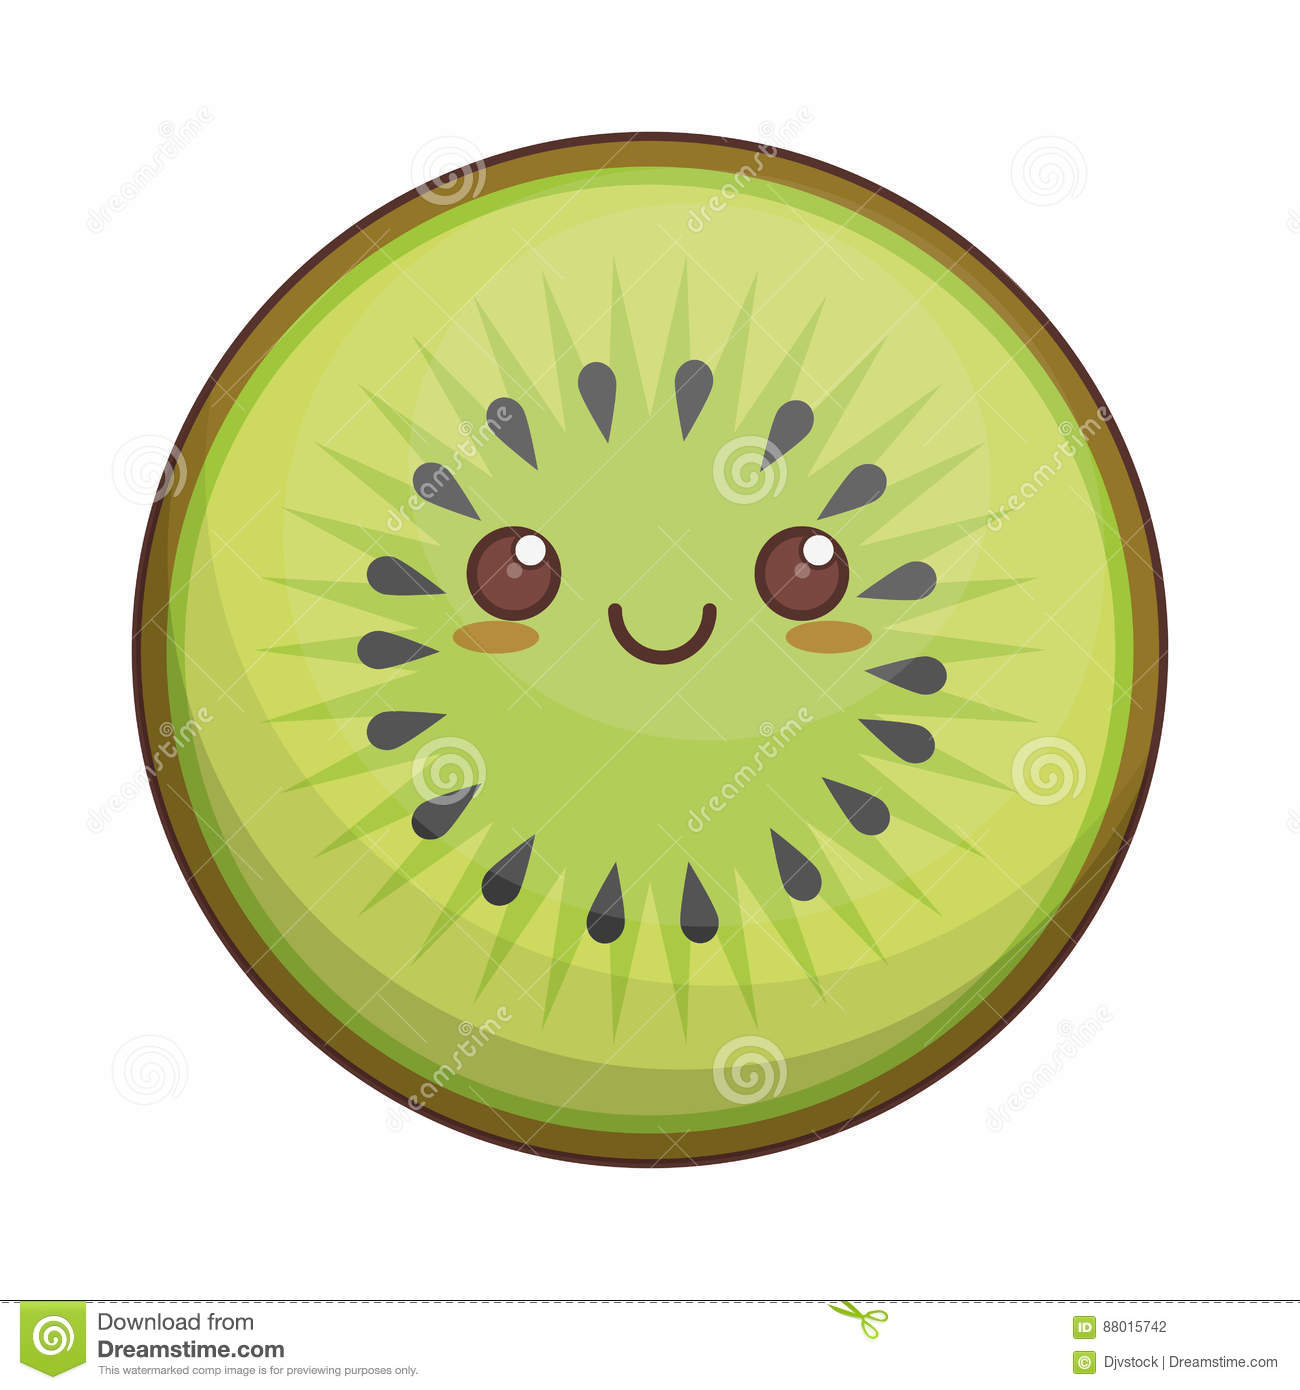 Stock Illustration Kawaii Kiwi Fruit Icon Illustration Eps Image88015742 on banana cartoon character